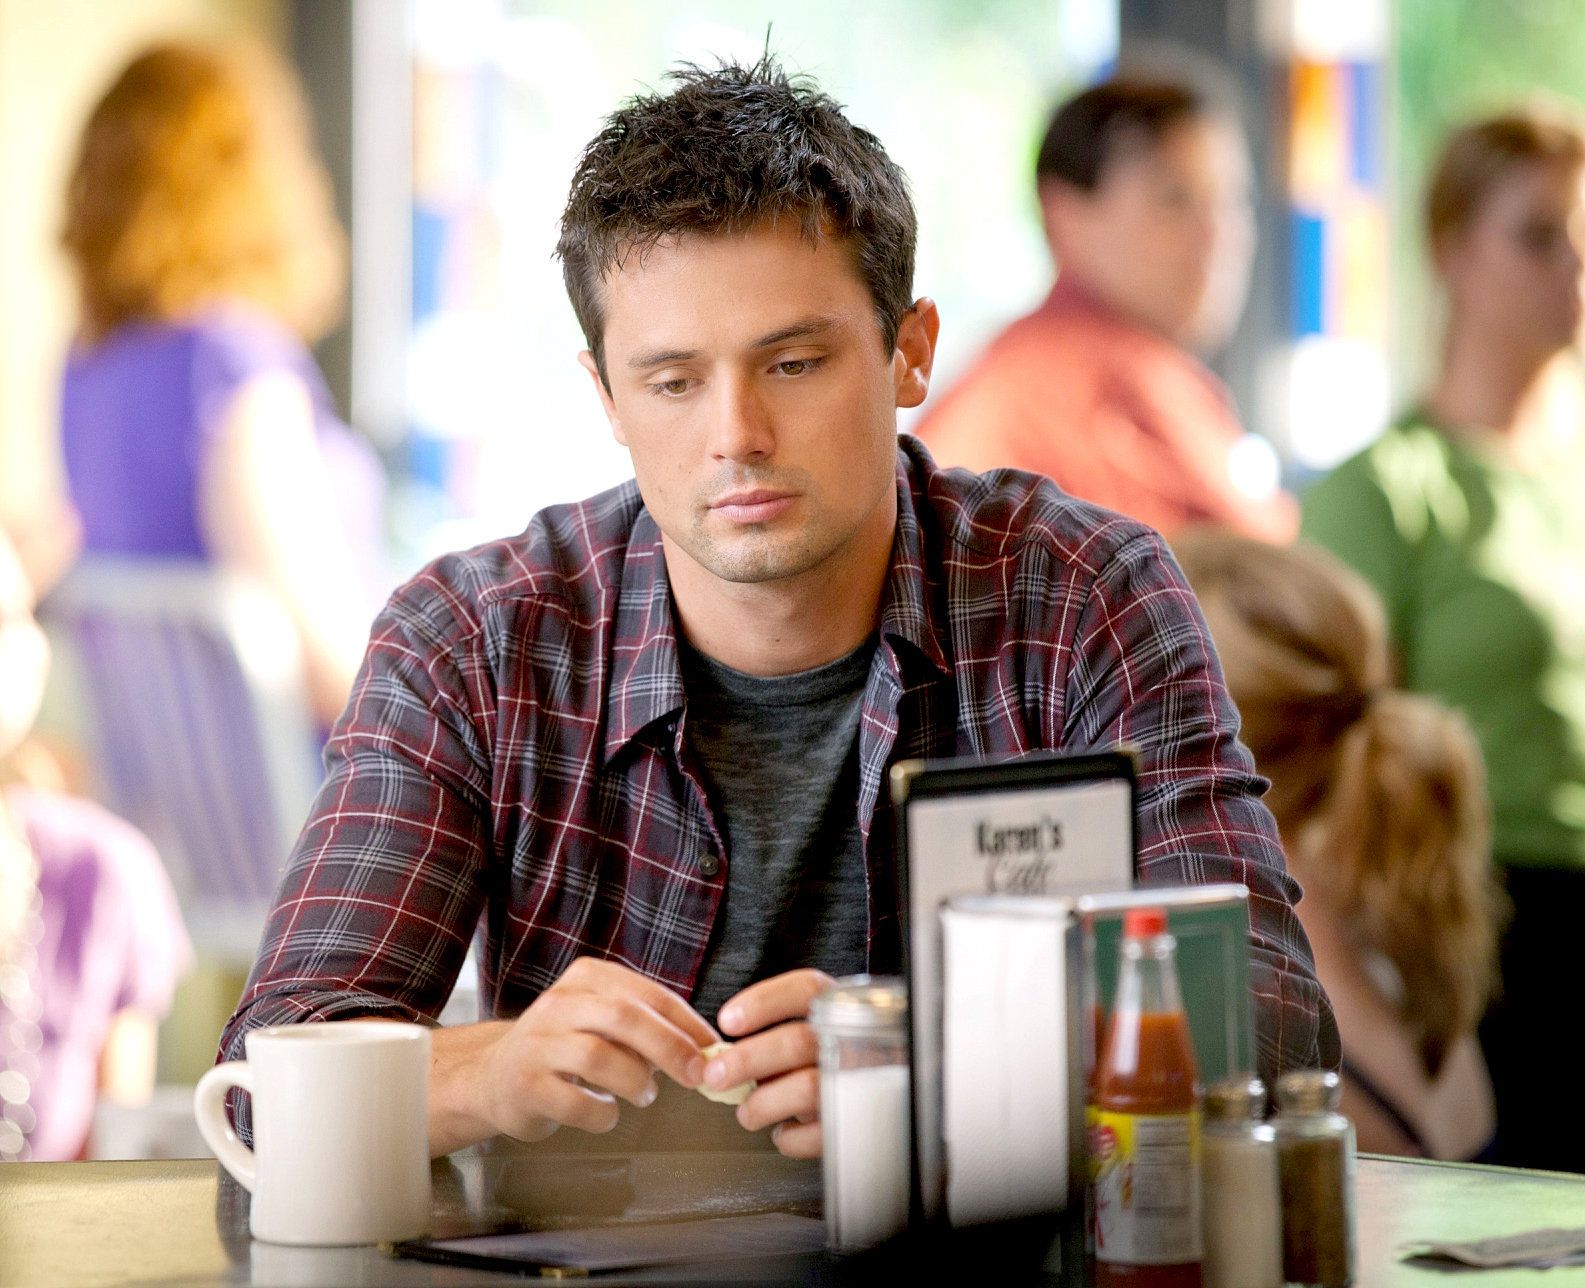 Stephen-Colletti-One-Tree-Hill - Stephen Colletti as Chase on One Tree Hill